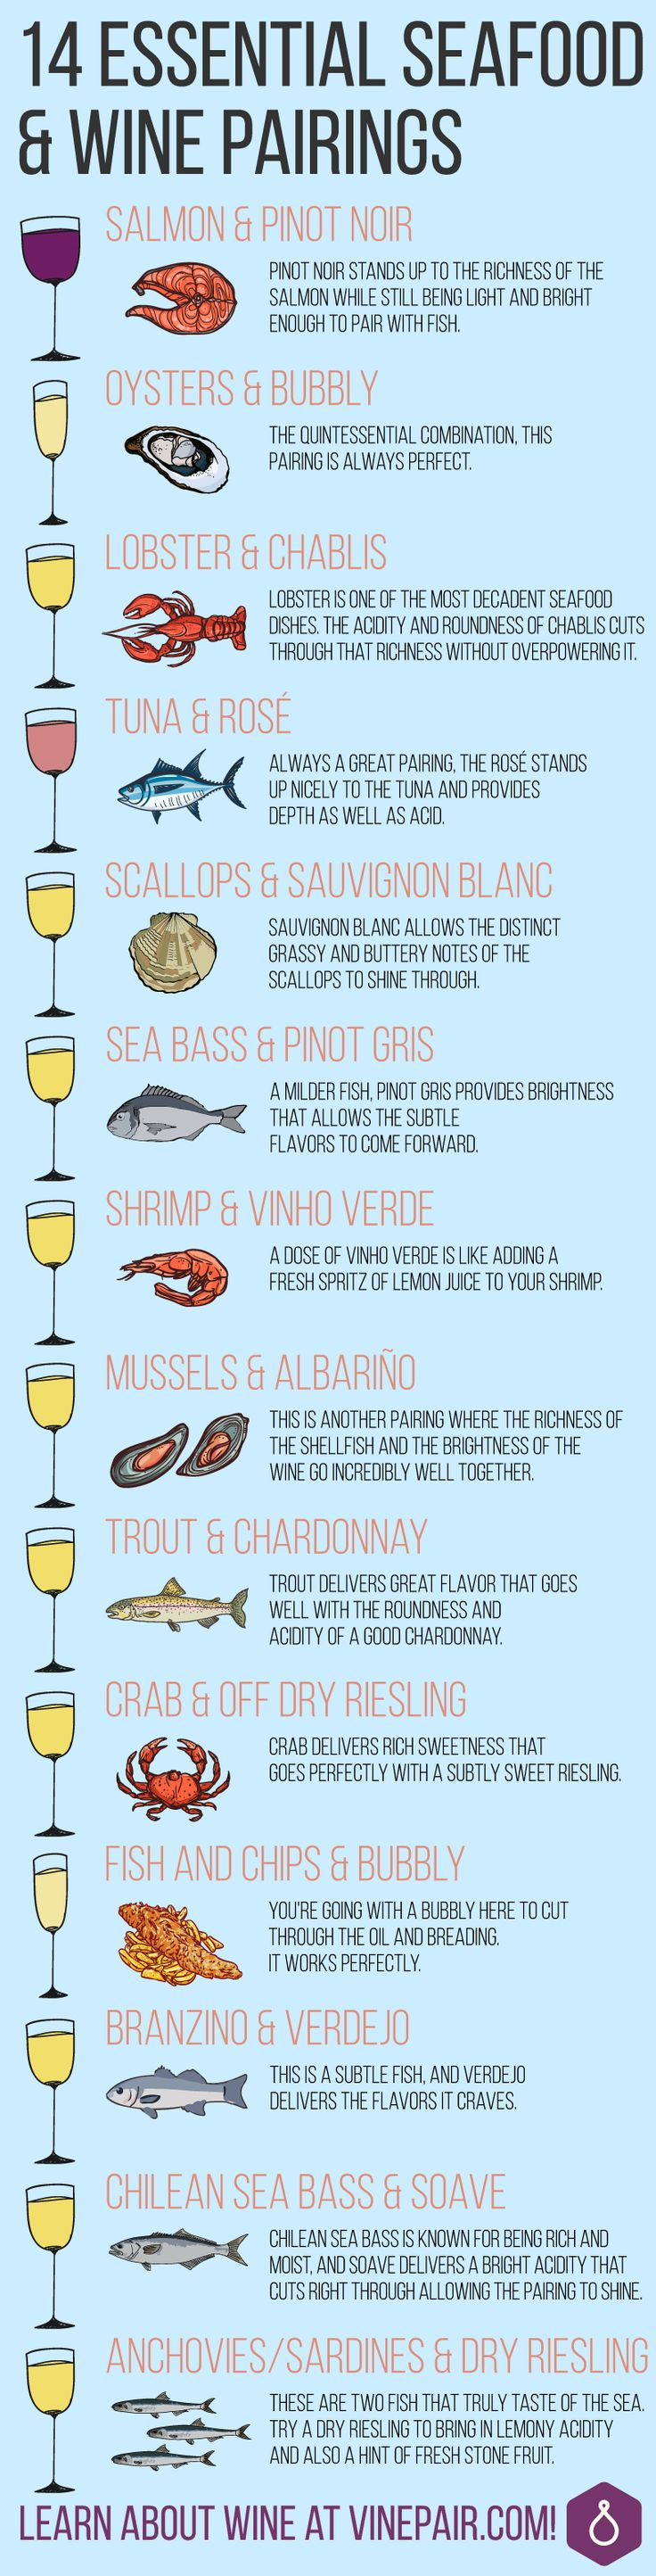 Wine Pairings For 14 Of The Most Popular Seafood Dishes [Infographic] | VinePair